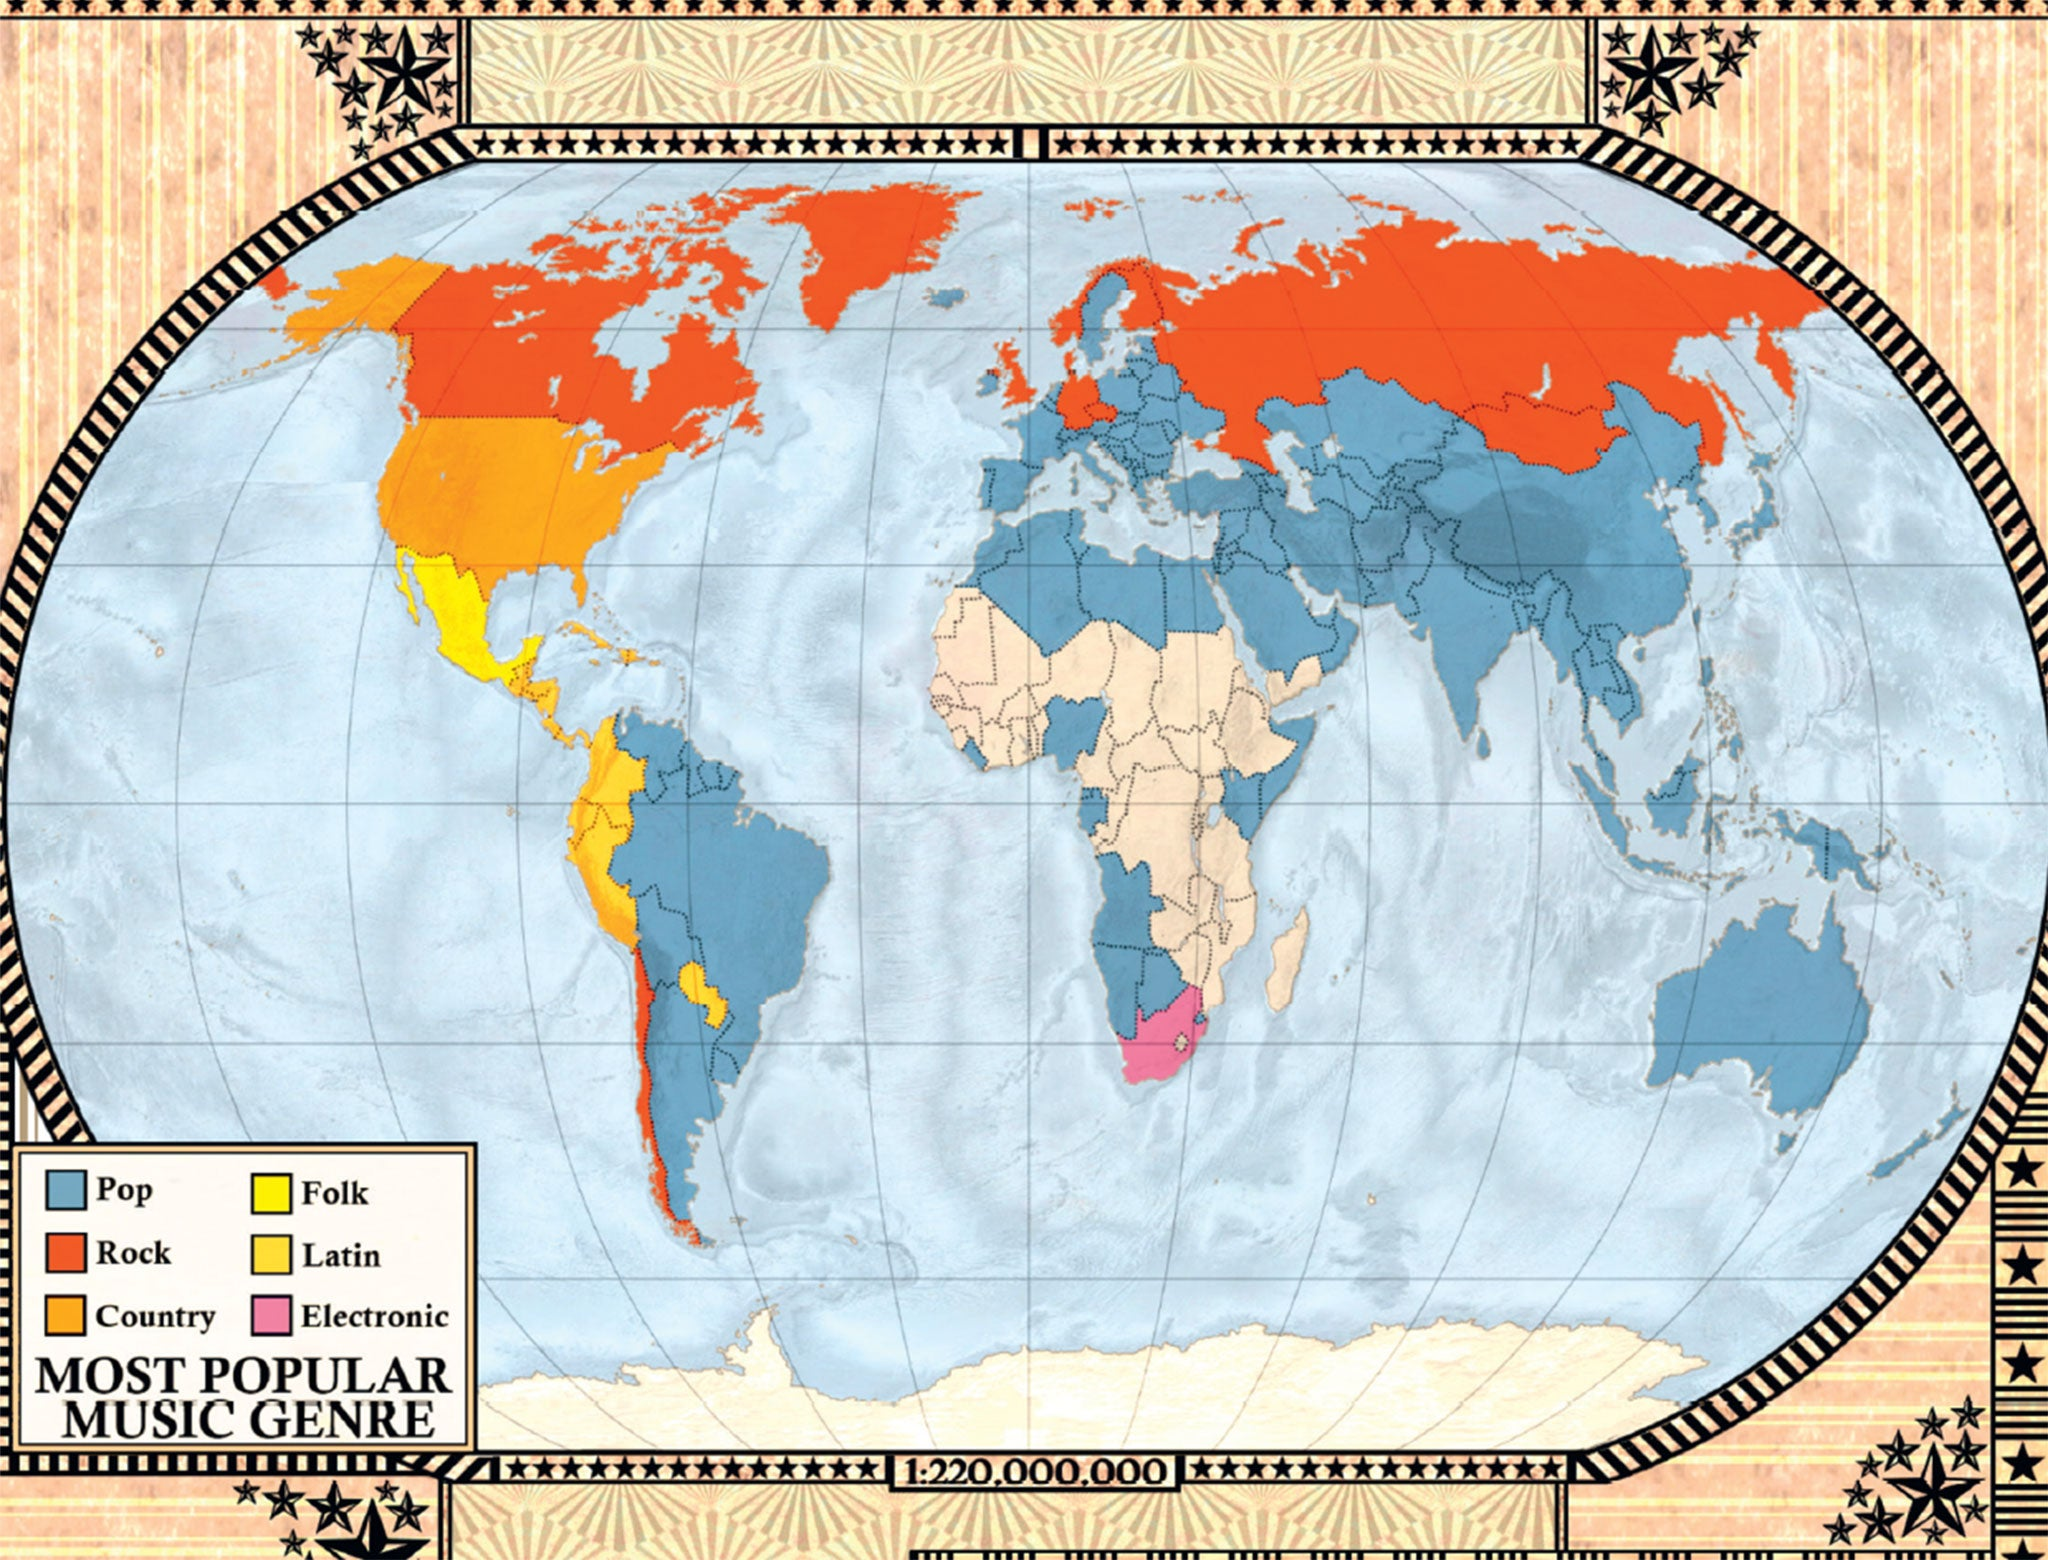 View Map Of The World.5 Maps That Will Change How You See The World The Independent